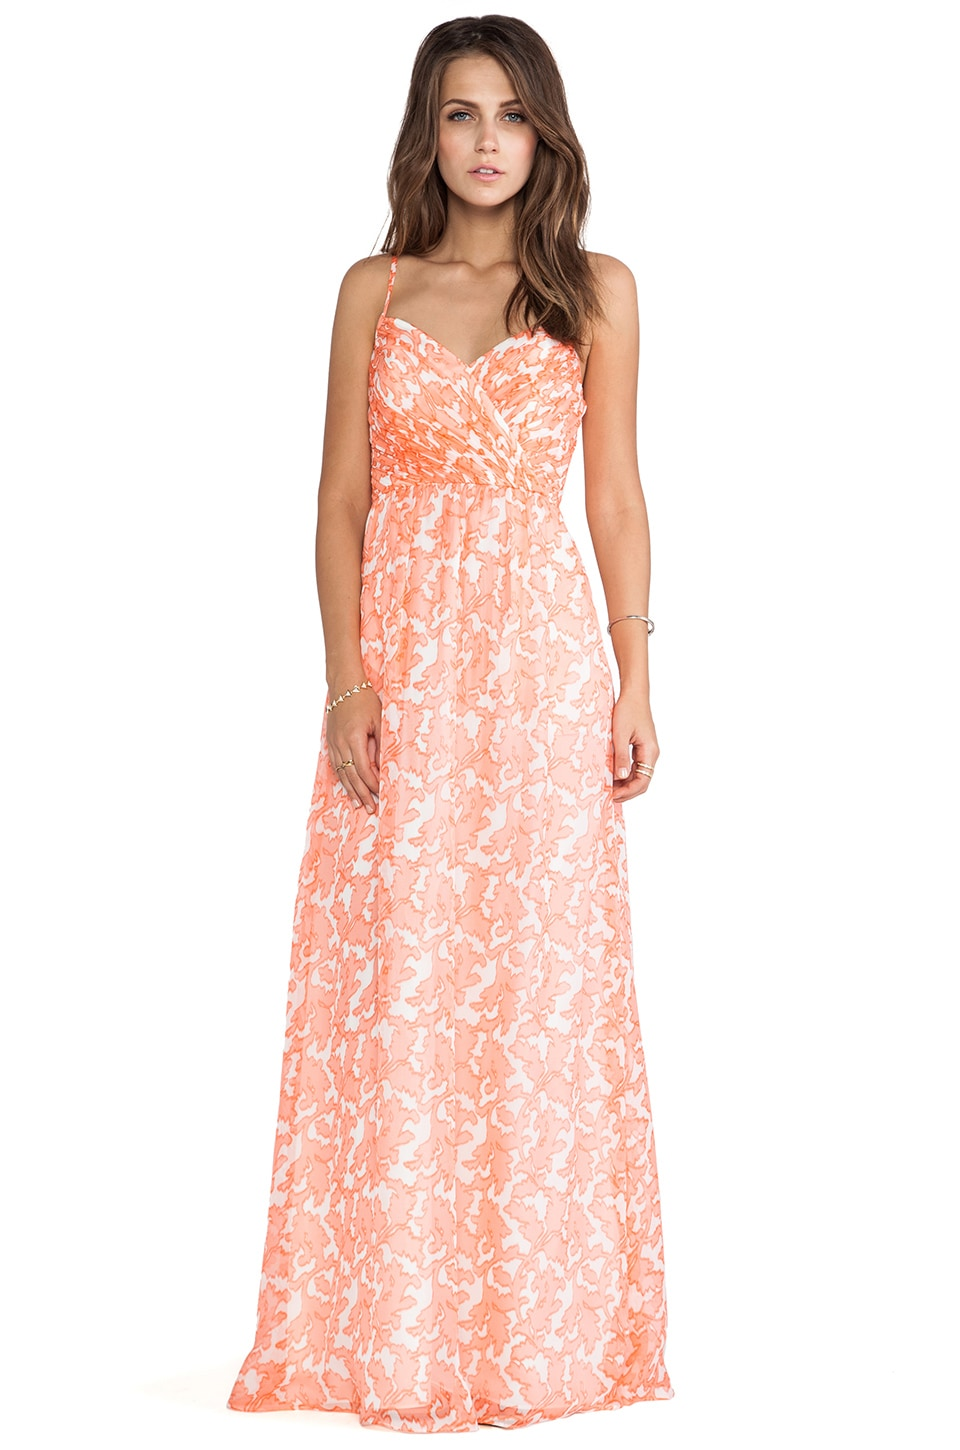 Shoshanna Coral Reef Chiffon Maxi Dress in Coral Multi